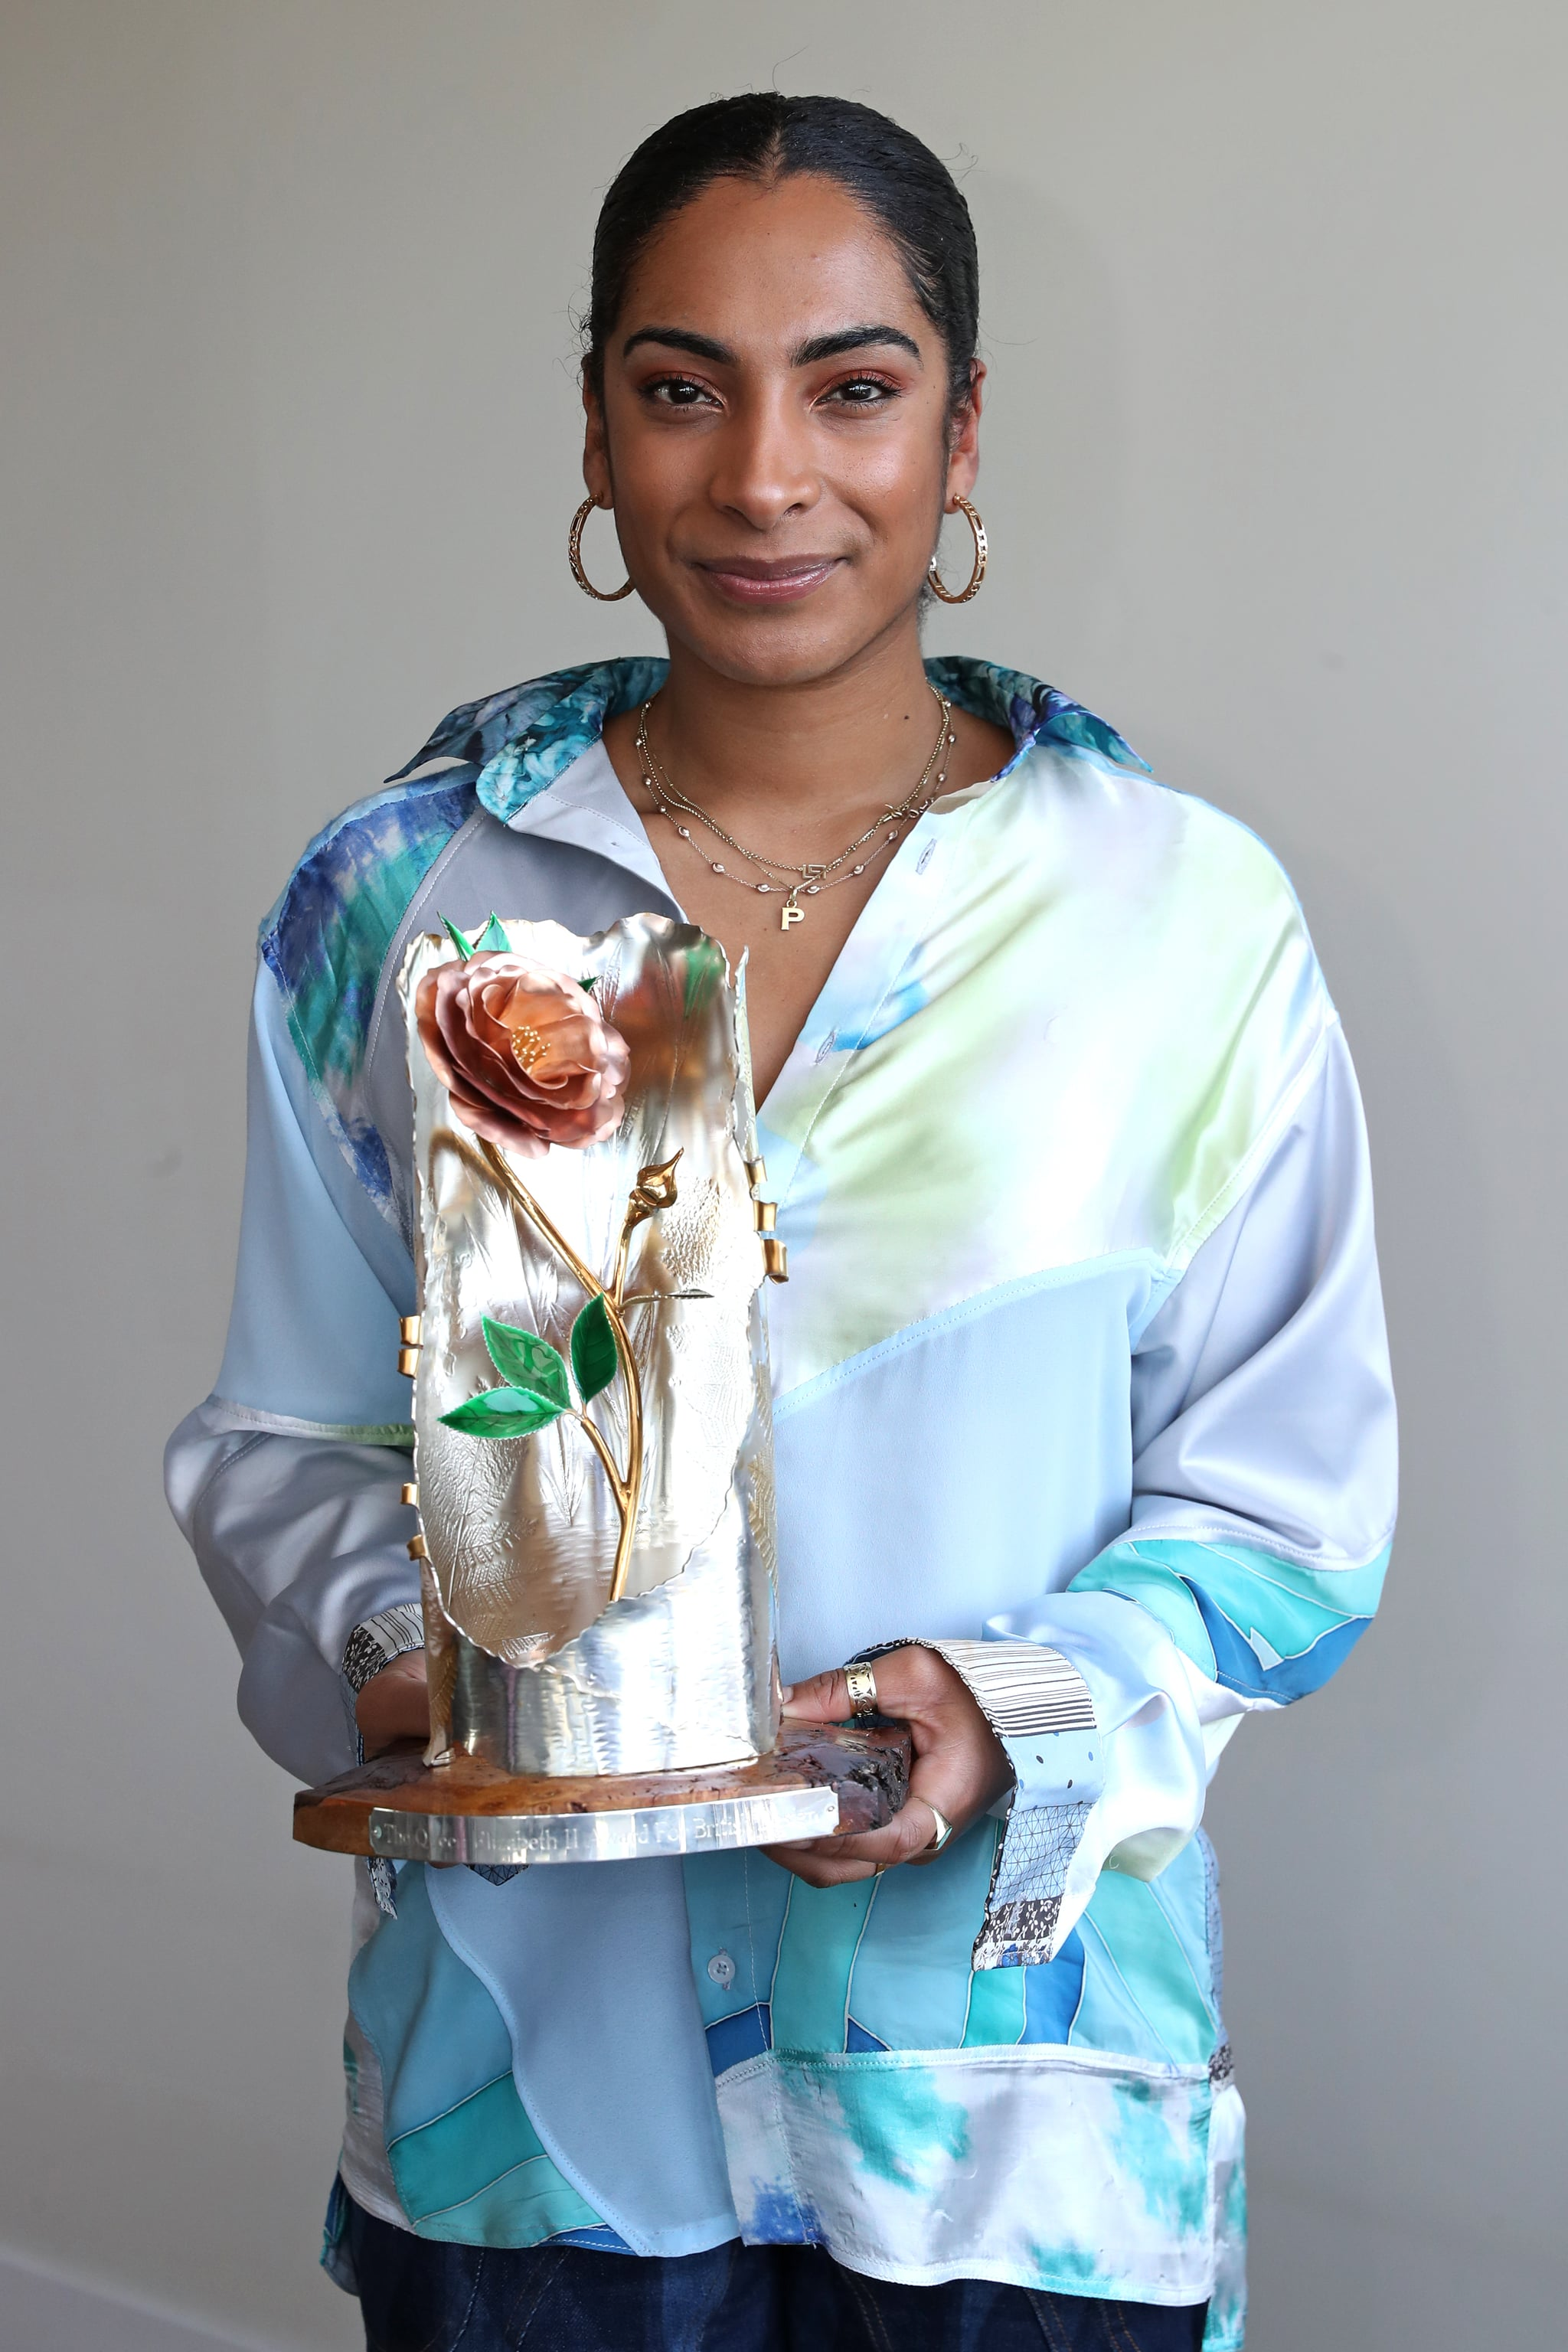 LONDON, ENGLAND - FEBRUARY 23: Winner of the Queen Elizabeth II Award for British Design, Designer Priya Ahluwalia is pictured with her award during LFW February 2021 at Fora, Soho on February 23, 2021 in London, England. (Photo by Chris Jackson/BFC/Getty Images)